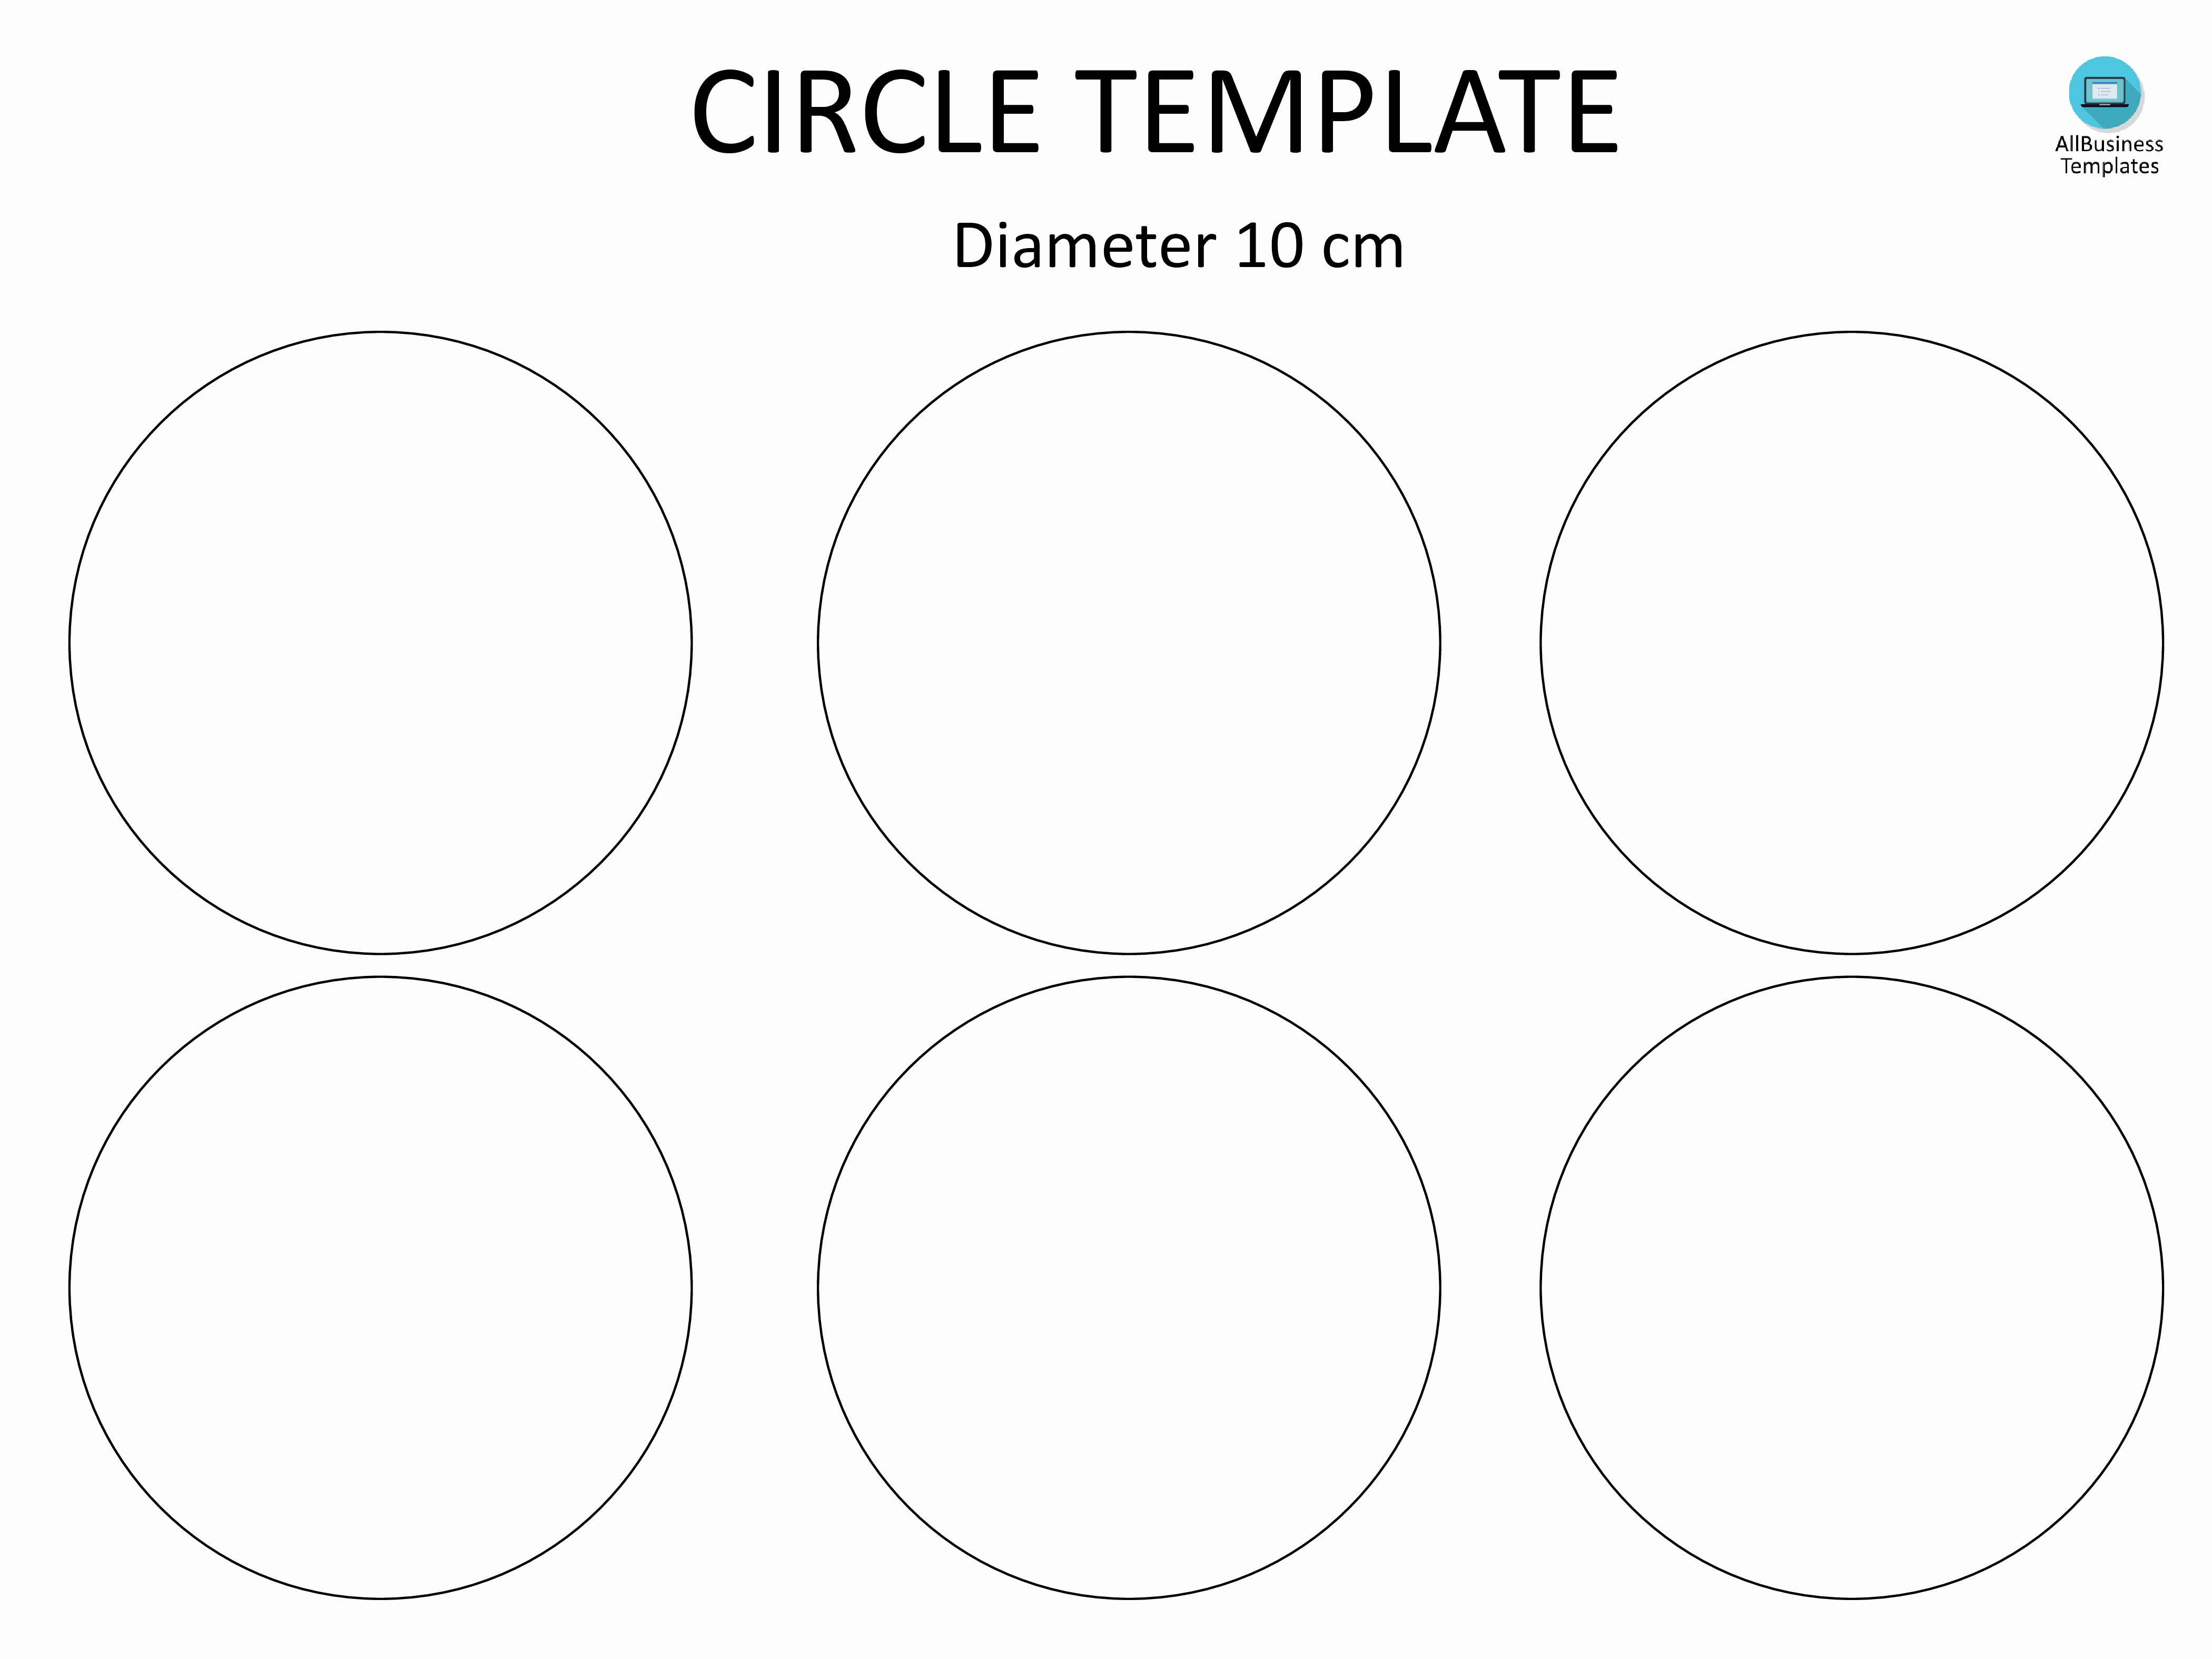 3 Inch Diameter Circle Template Best Of Free Circle Template with 10cm Diameter